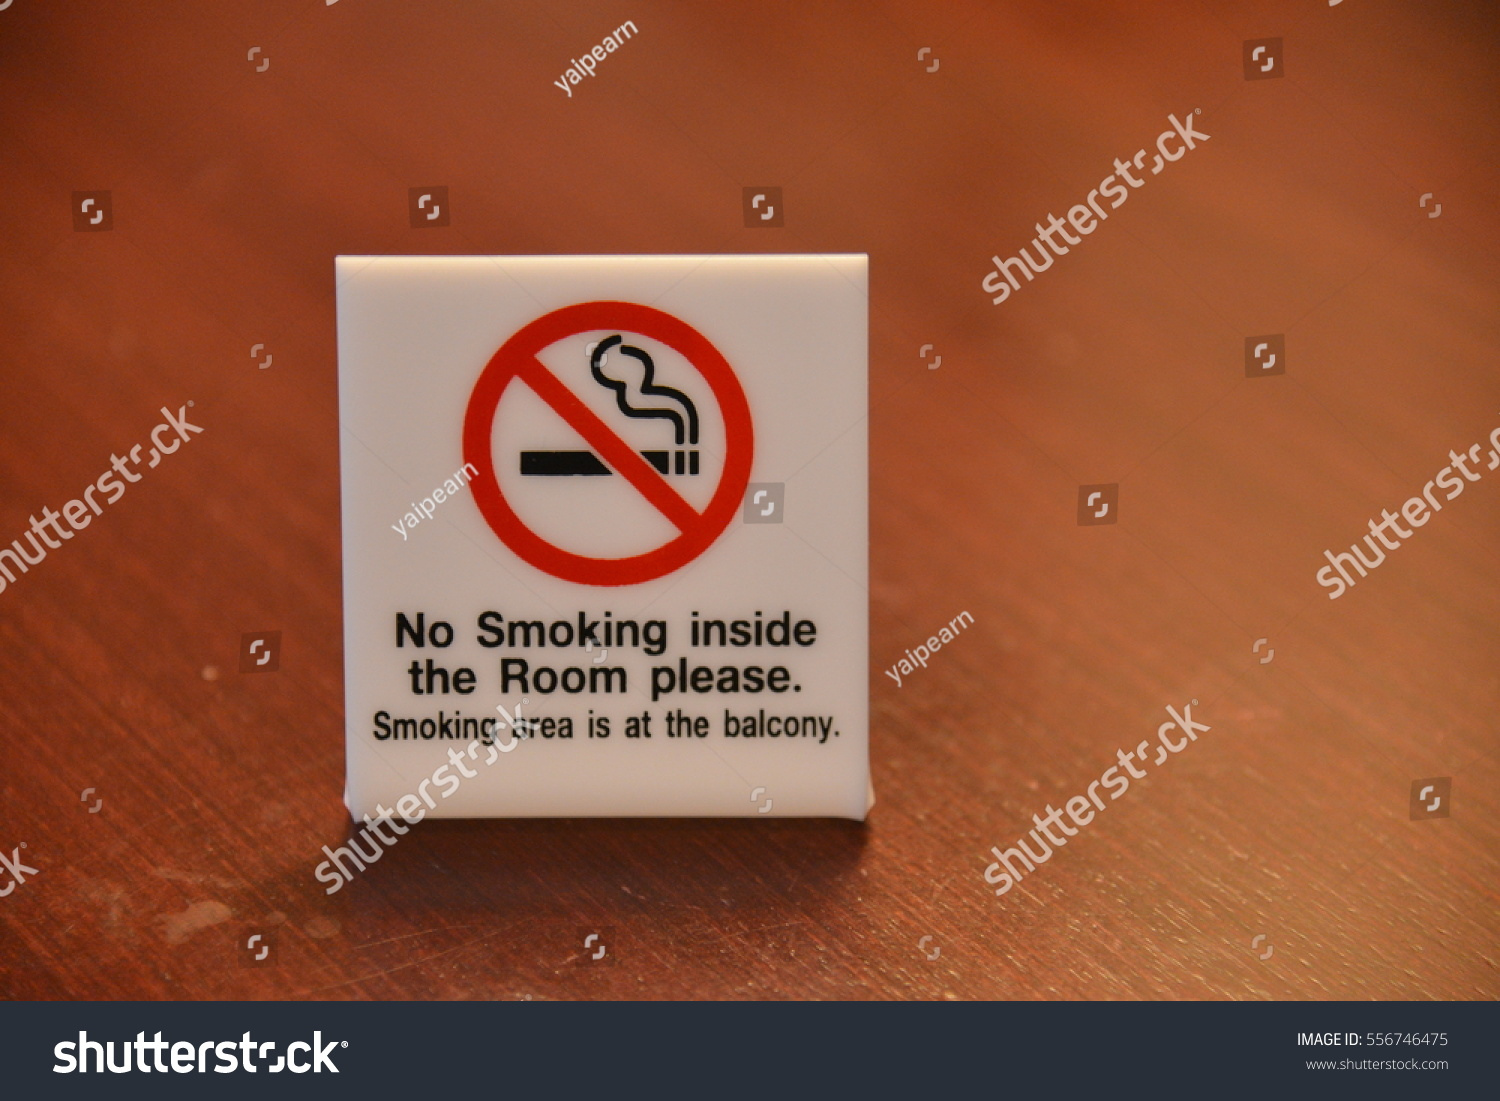 Dont smoking symbol on wood table stock photo 556746475 shutterstock dont smoking symbol on wood table buycottarizona Images